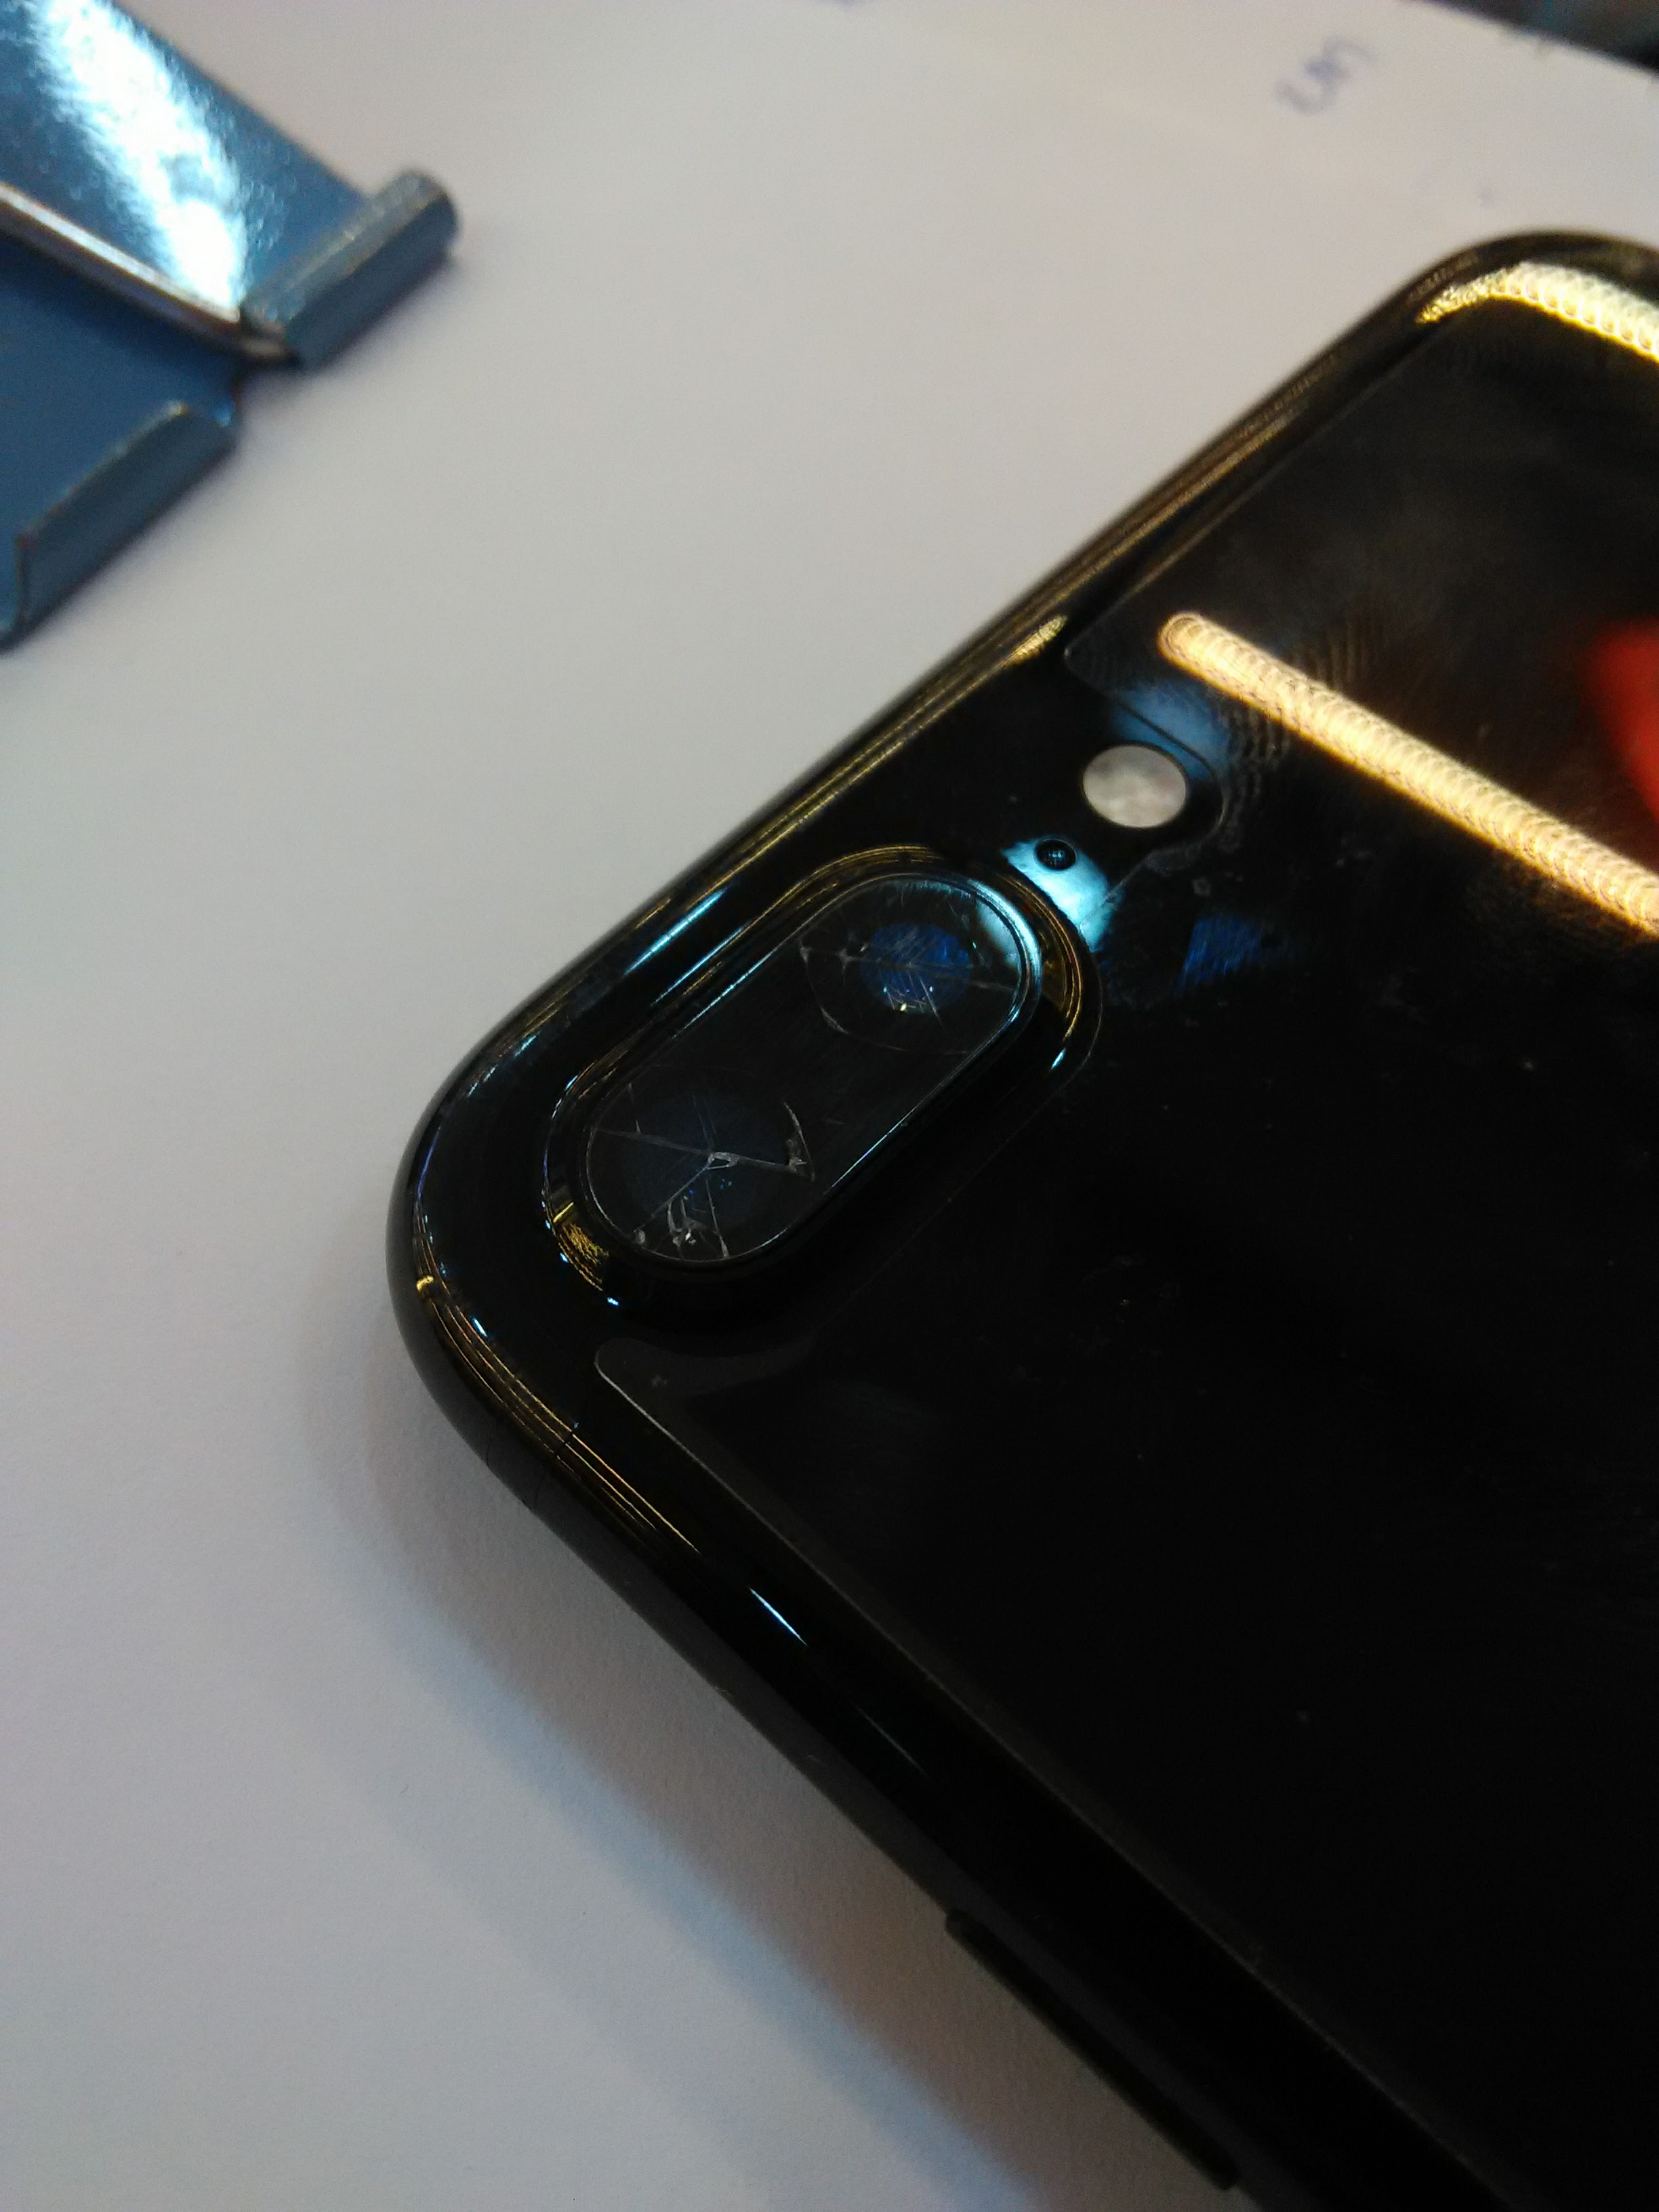 official photos 58d2e 79b9c My iphone 7 plus broken the glass of back… - Apple Community